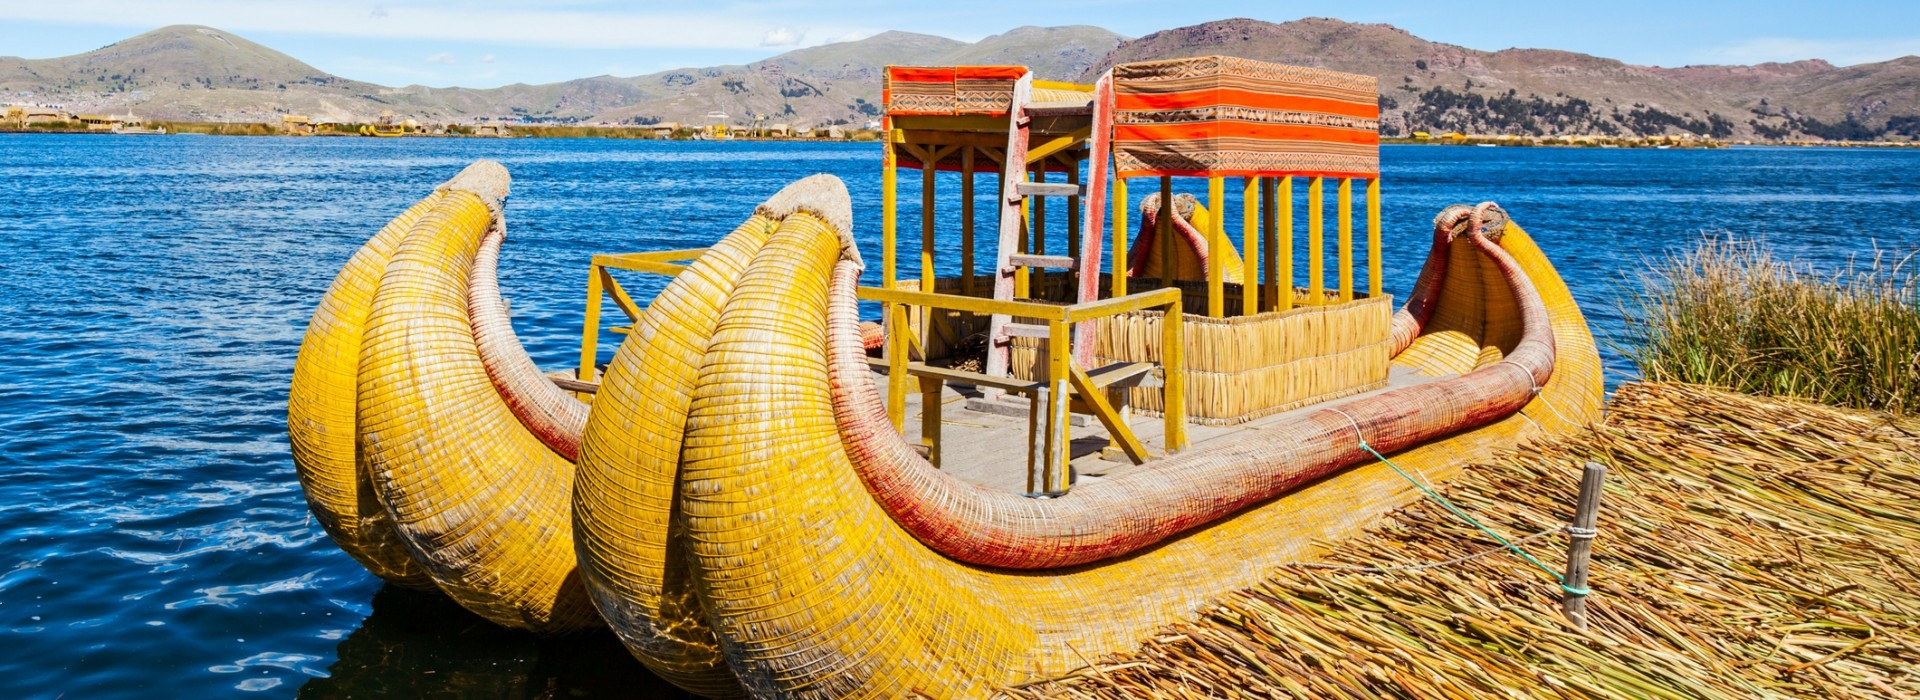 A visit to Puno means exploring Peru's long naval and indigenous history